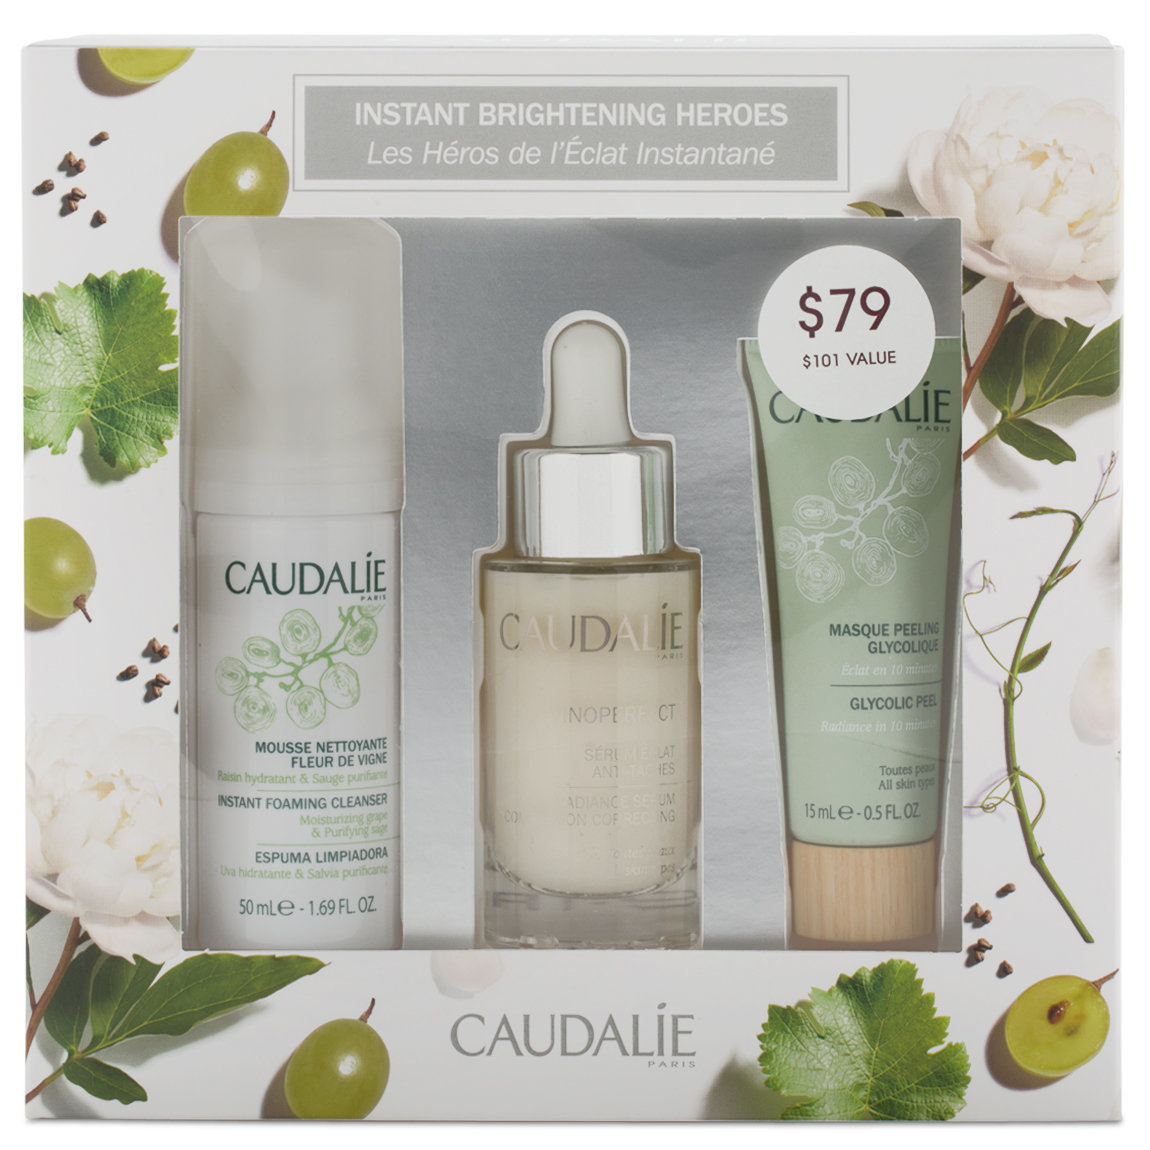 Caudalie Vinoperfect Instant Brightening Heroes Set product swatch.